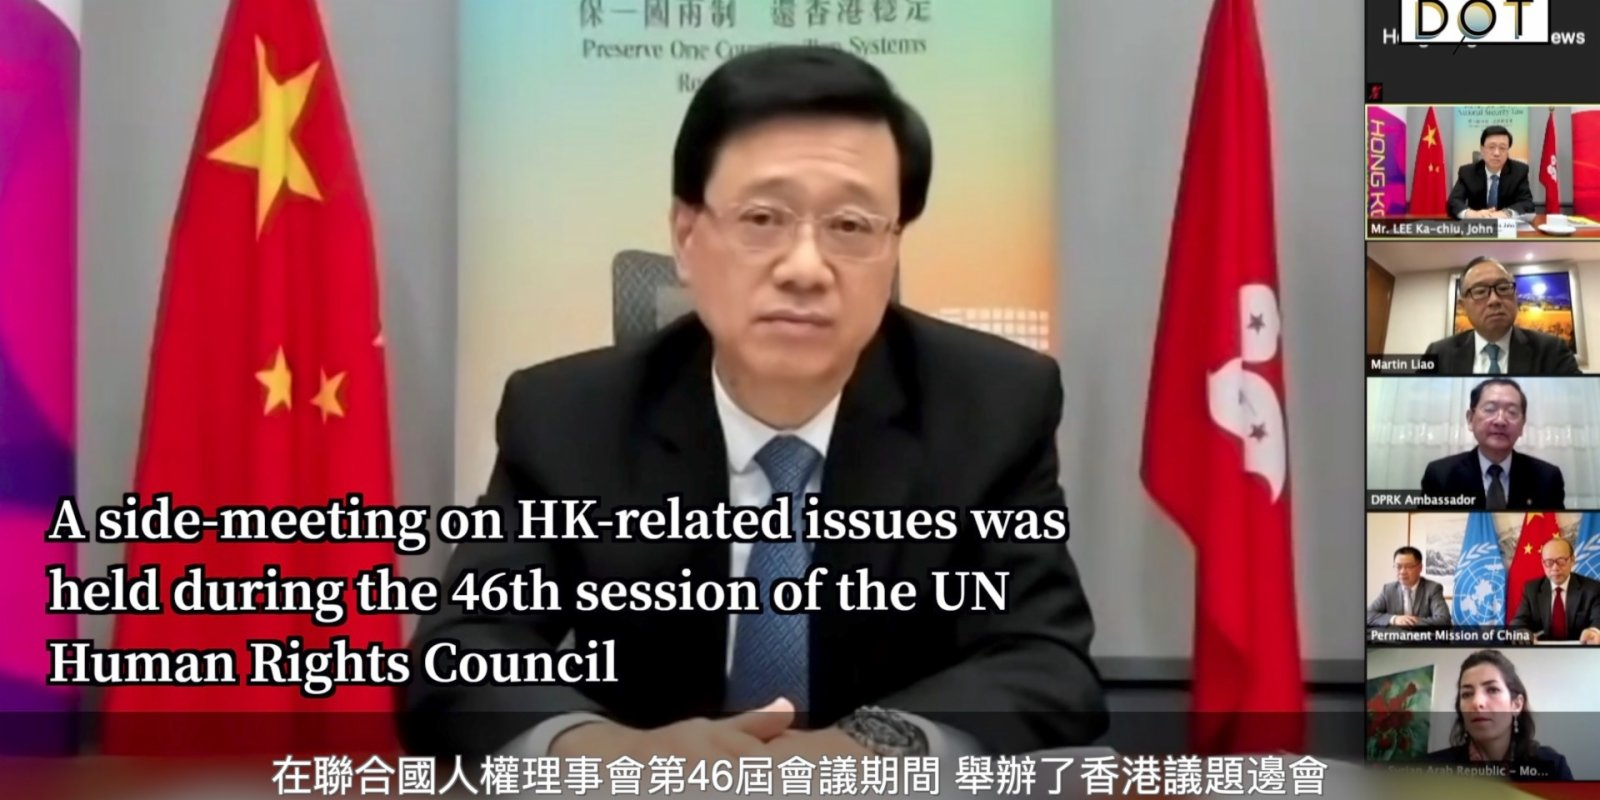 Watch this | NSL in HK gives due respect to people's freedoms, rights: Officials tell UN